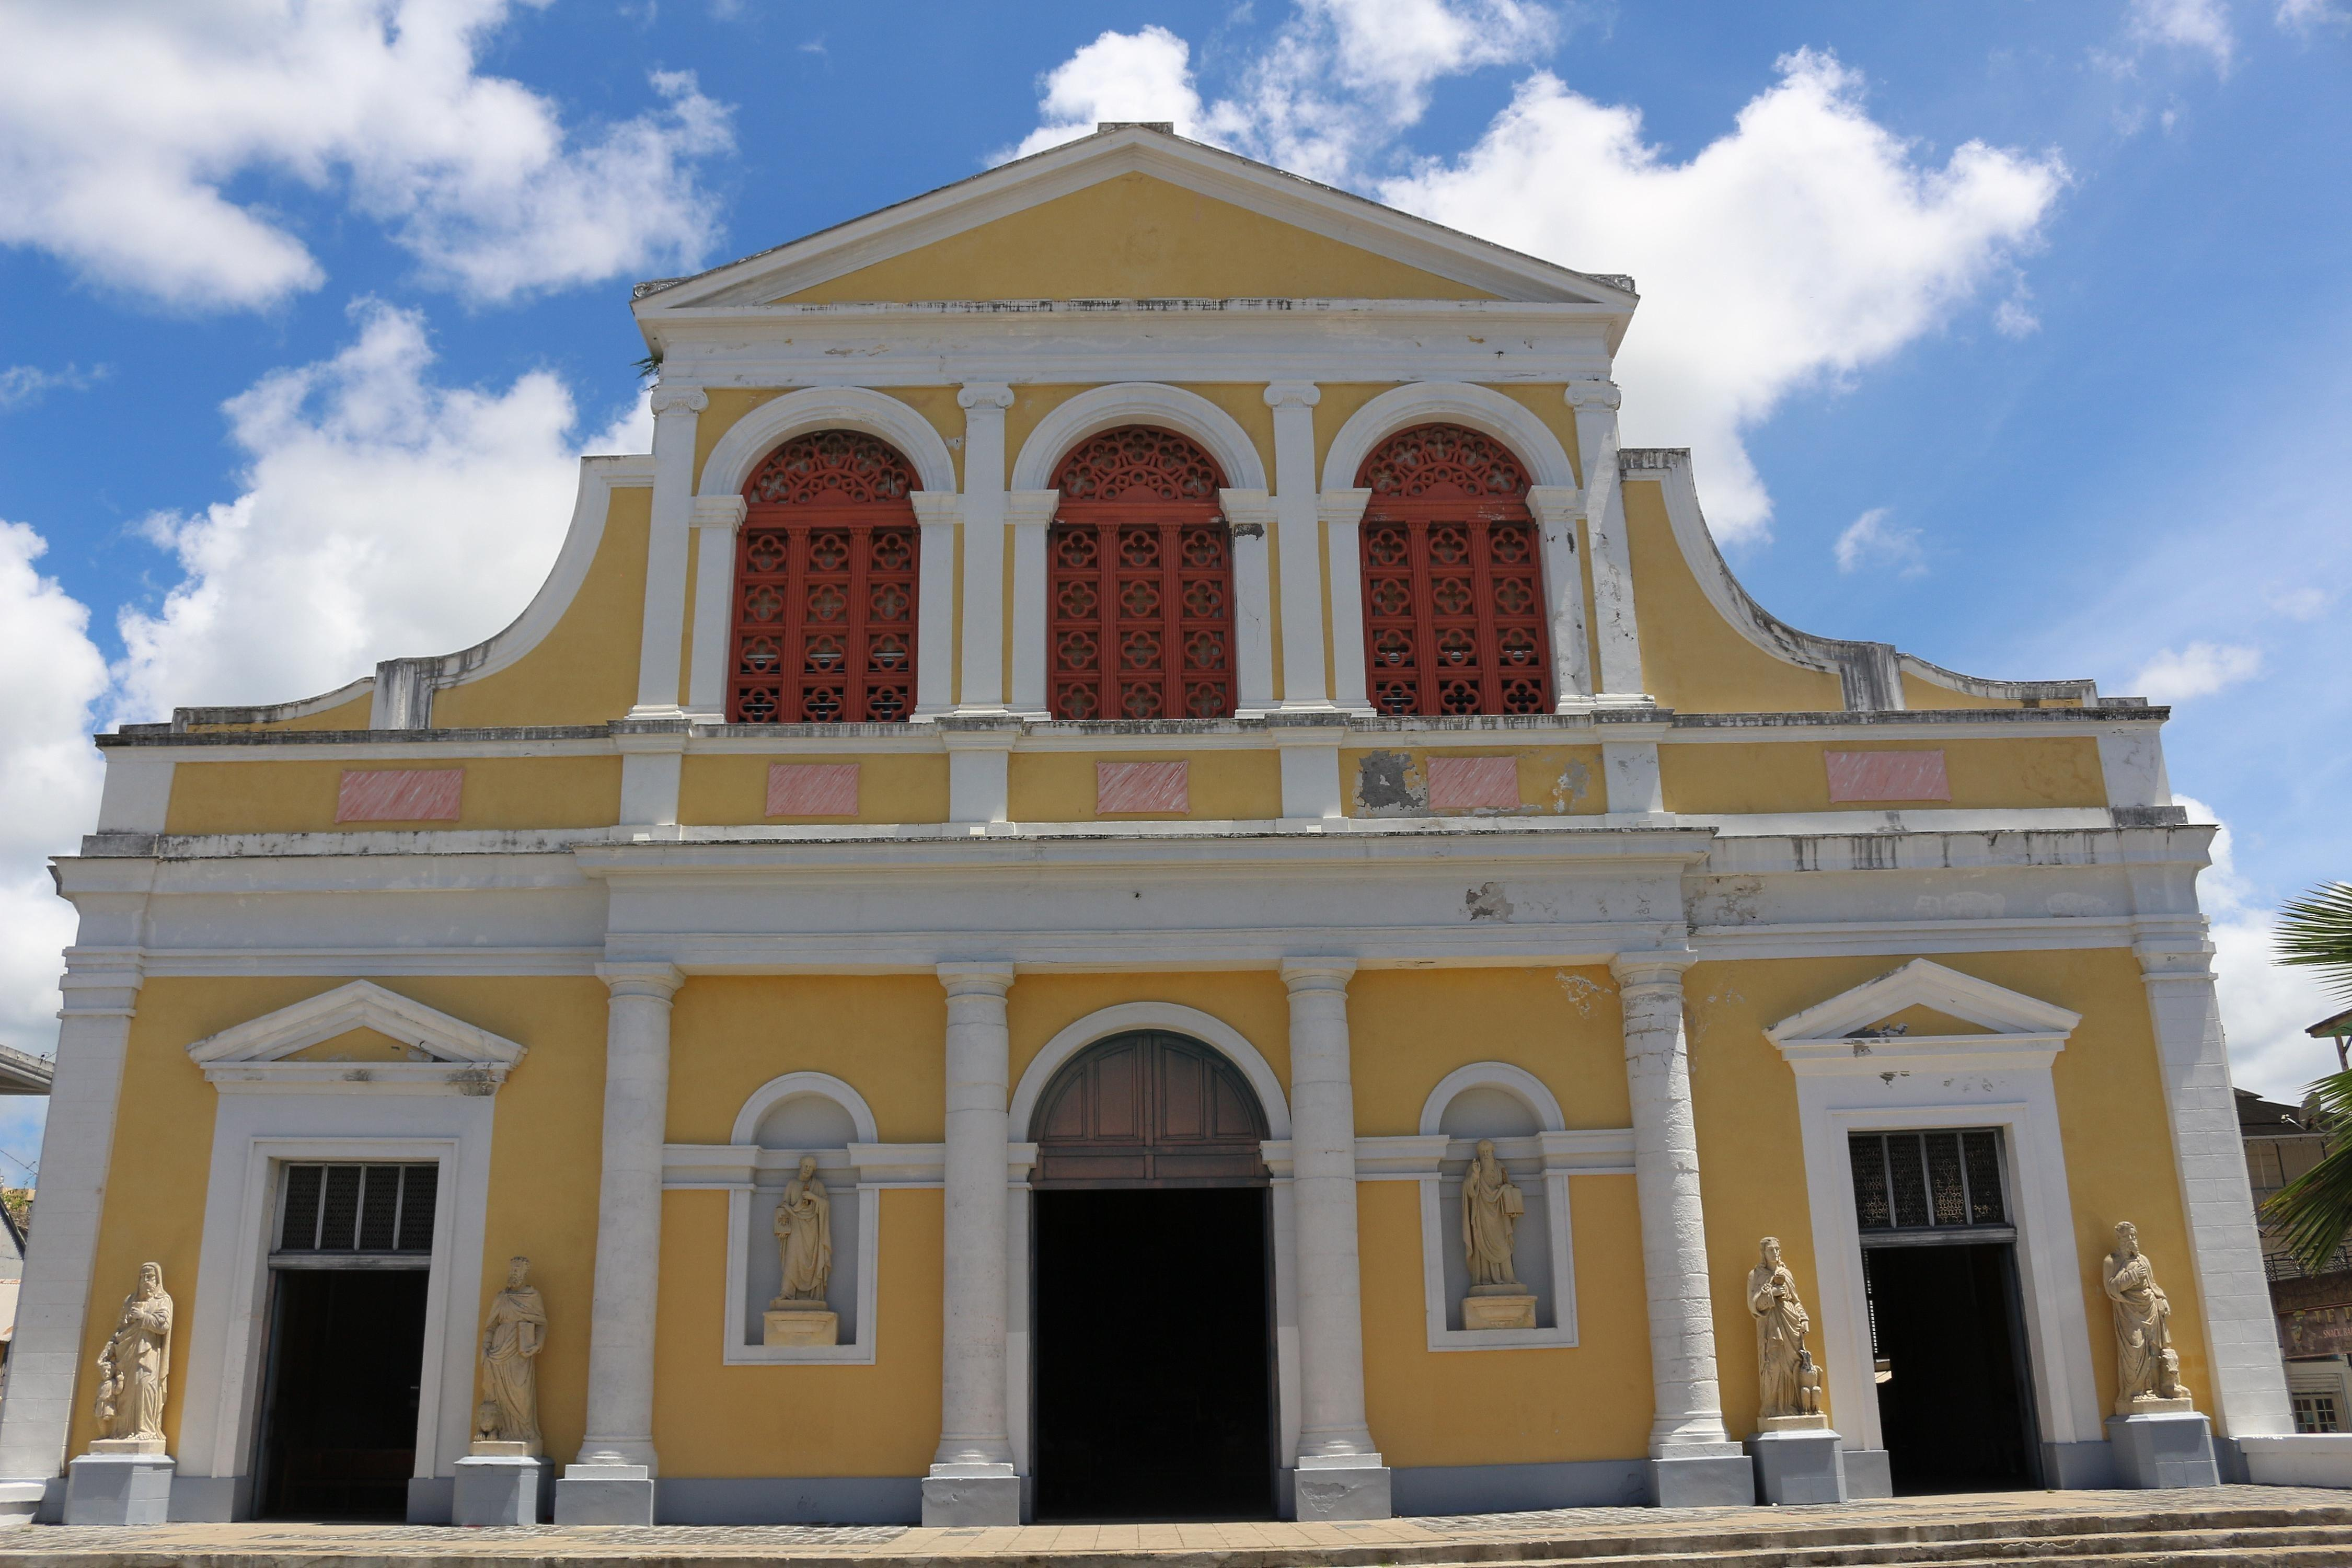 Reconstructed in 1876, Cathédrale de St-Pierre et St-Paul is in the center of Pointe-à-Pitre, this French-speaking country's largest city. Self-guided tours are offered daily inside this church with its bright-yellow exterior.